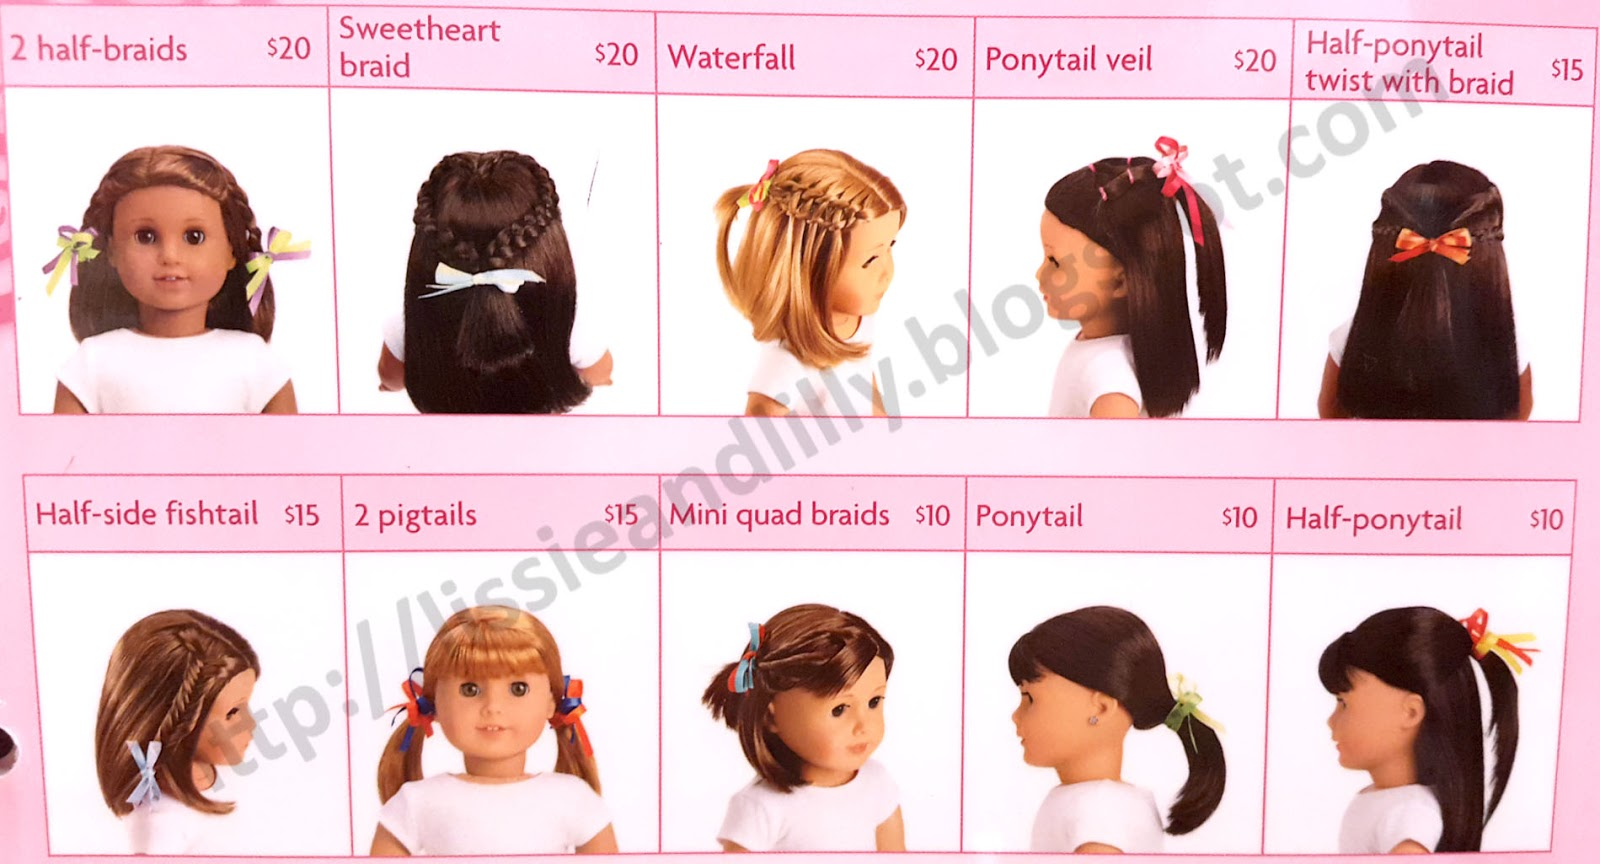 american girl hair salon styles lissie amp lilly ag salon hairstyles 1991 | WM%2B20150521 122231